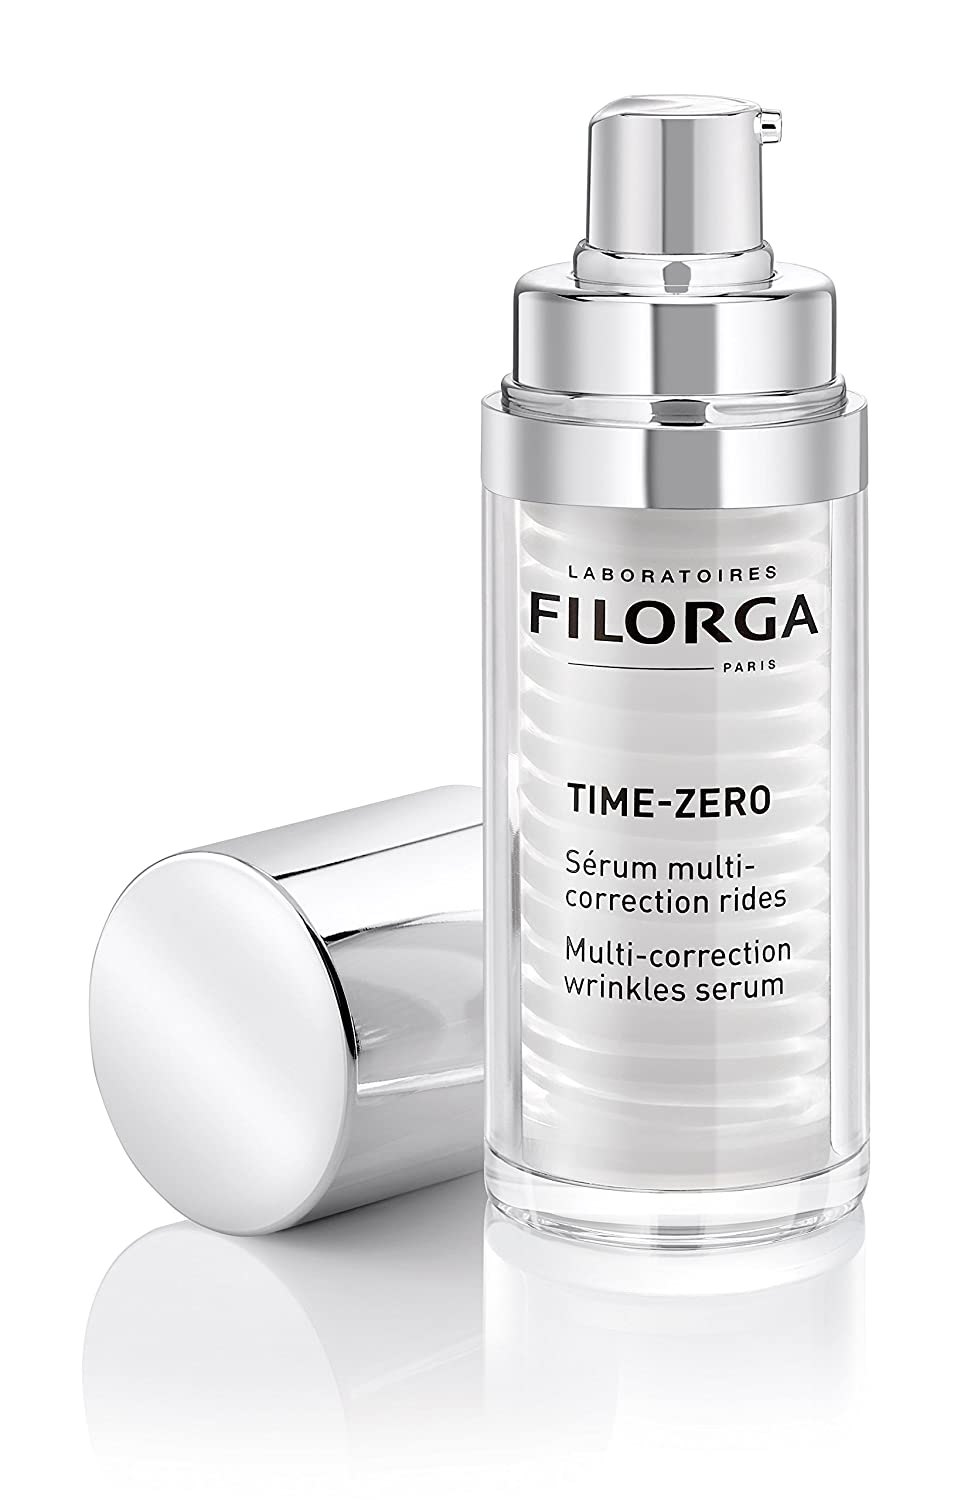 Filorga Time-zero Multi-correction Anti-wrinkle Serum, 1 fl. Oz. Laboratoires Filorga 6004976